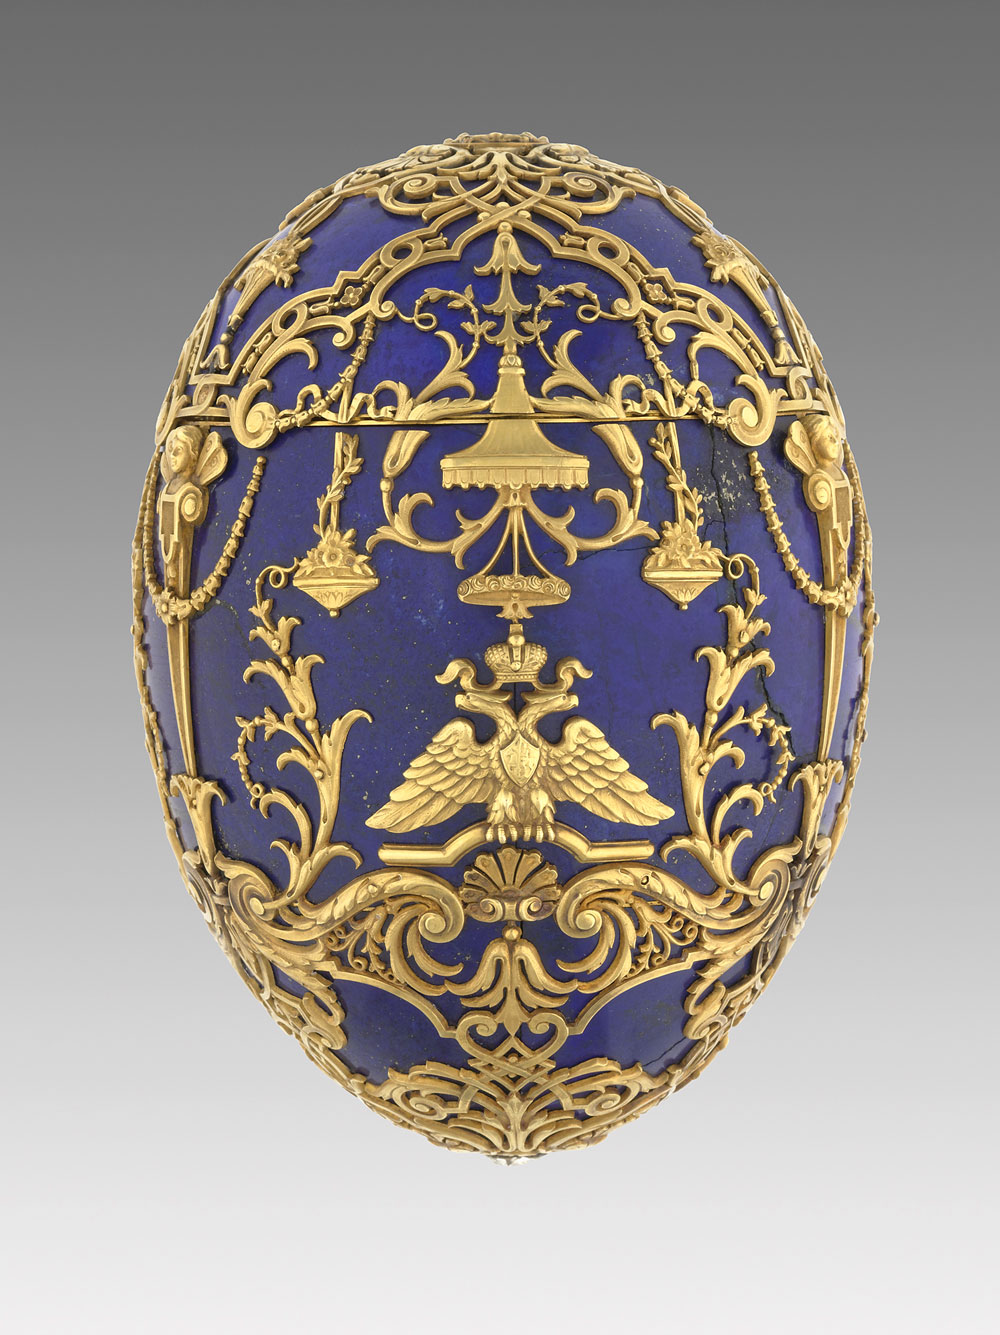 Exhibition Faberg 233 Jeweler To The Tsars At The